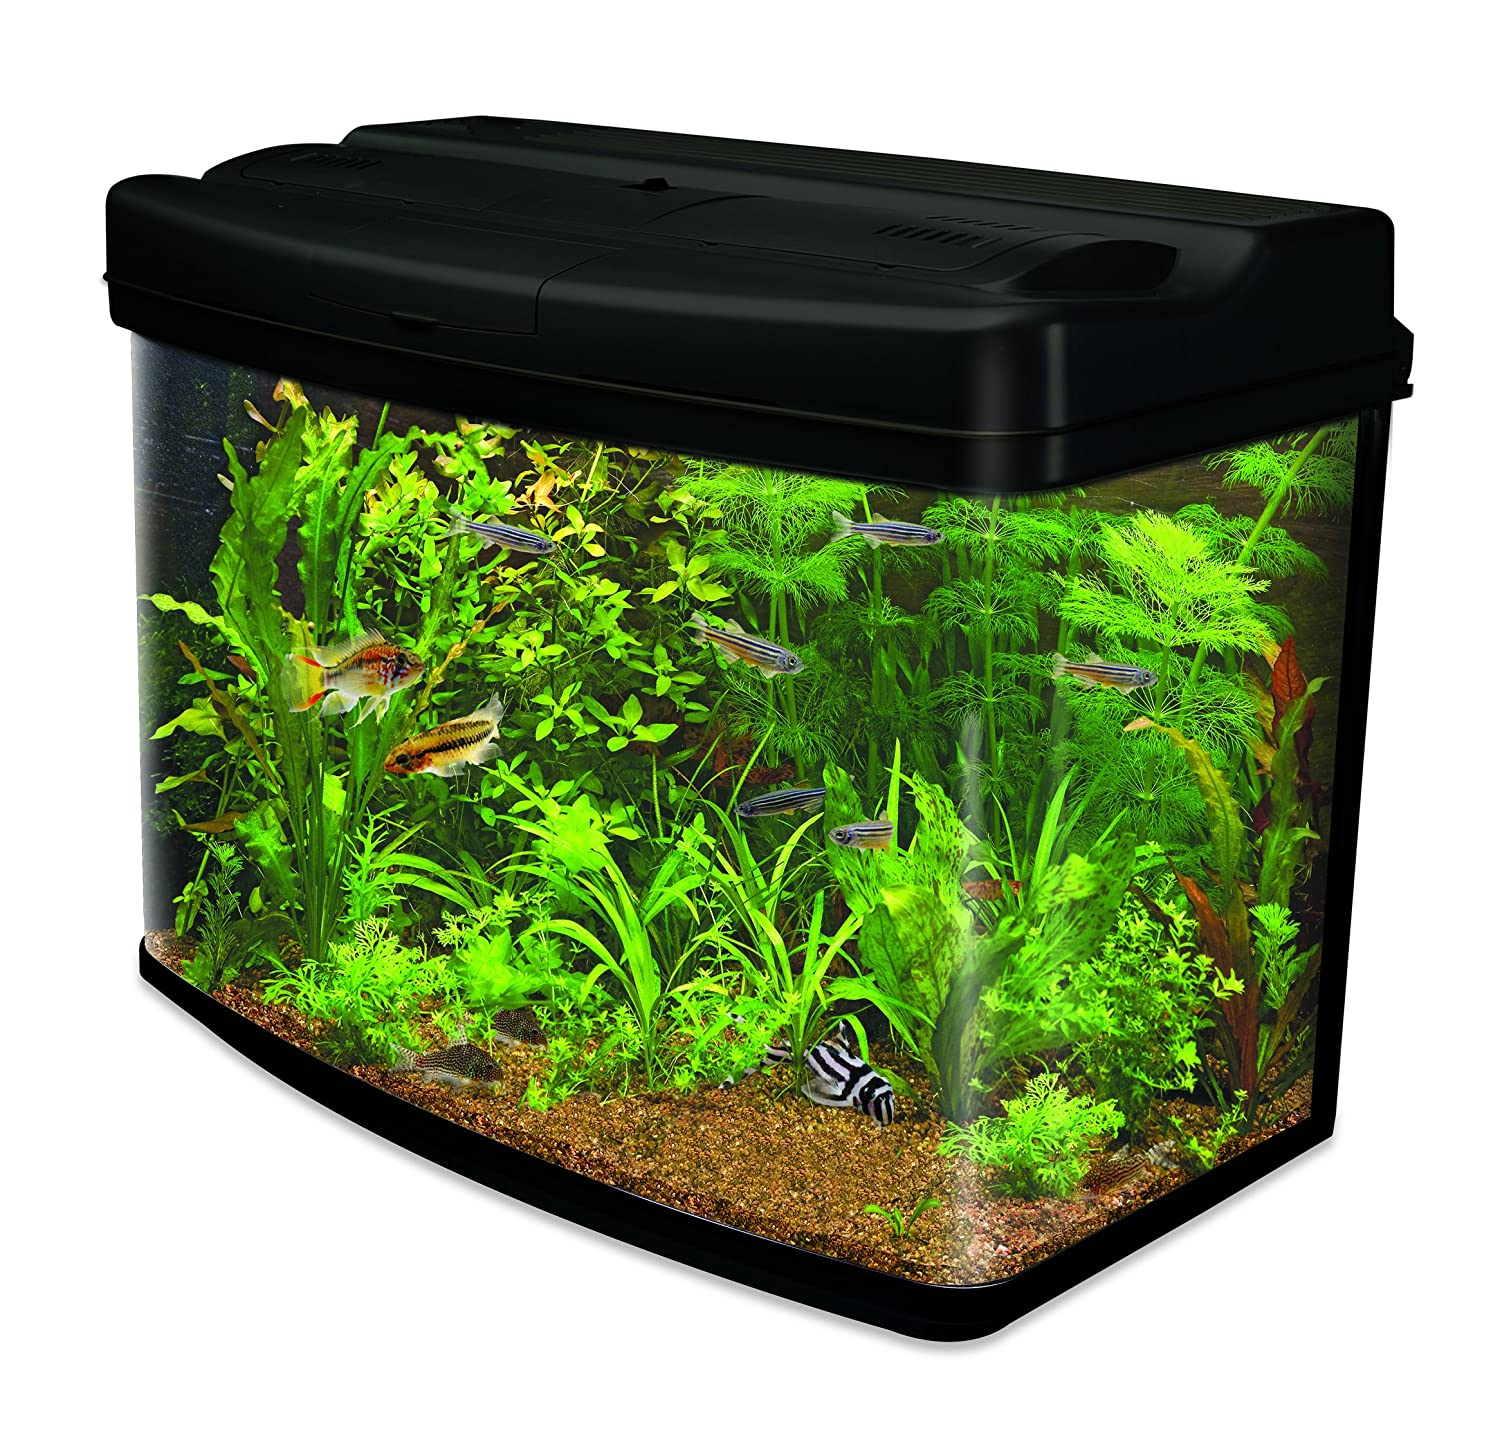 Fish aquarium price india - Interpet Fish Pod Glass Aquarium Fish Tank 120 Litre Including Cf3 Cartridge Filter Amazon Co Uk Pet Supplies